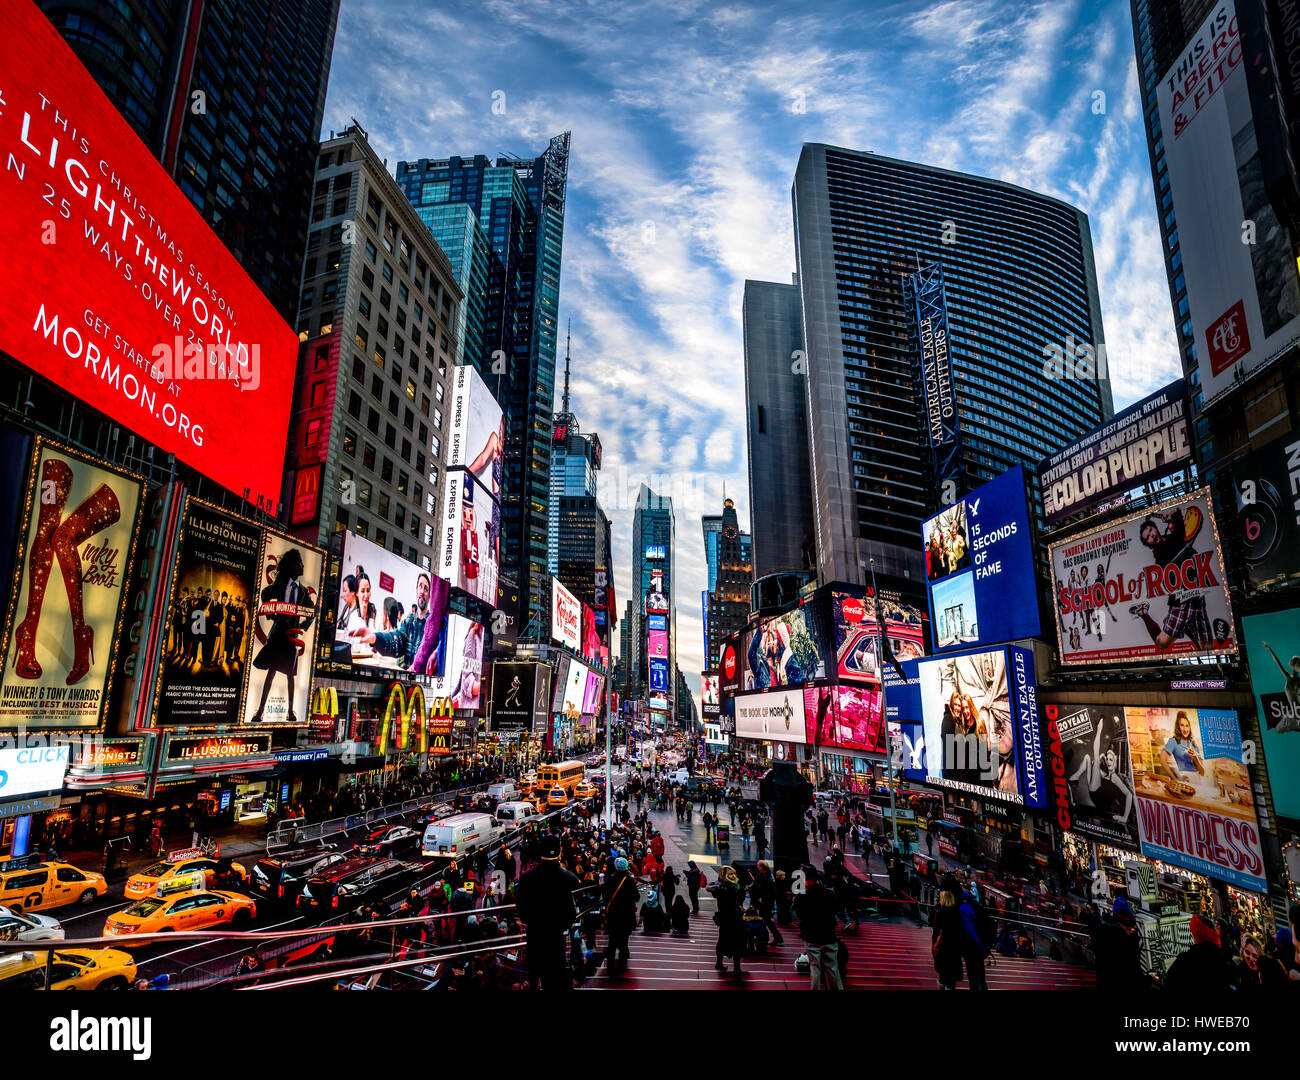 Times Square at sunset - New York, USA - Stock Image